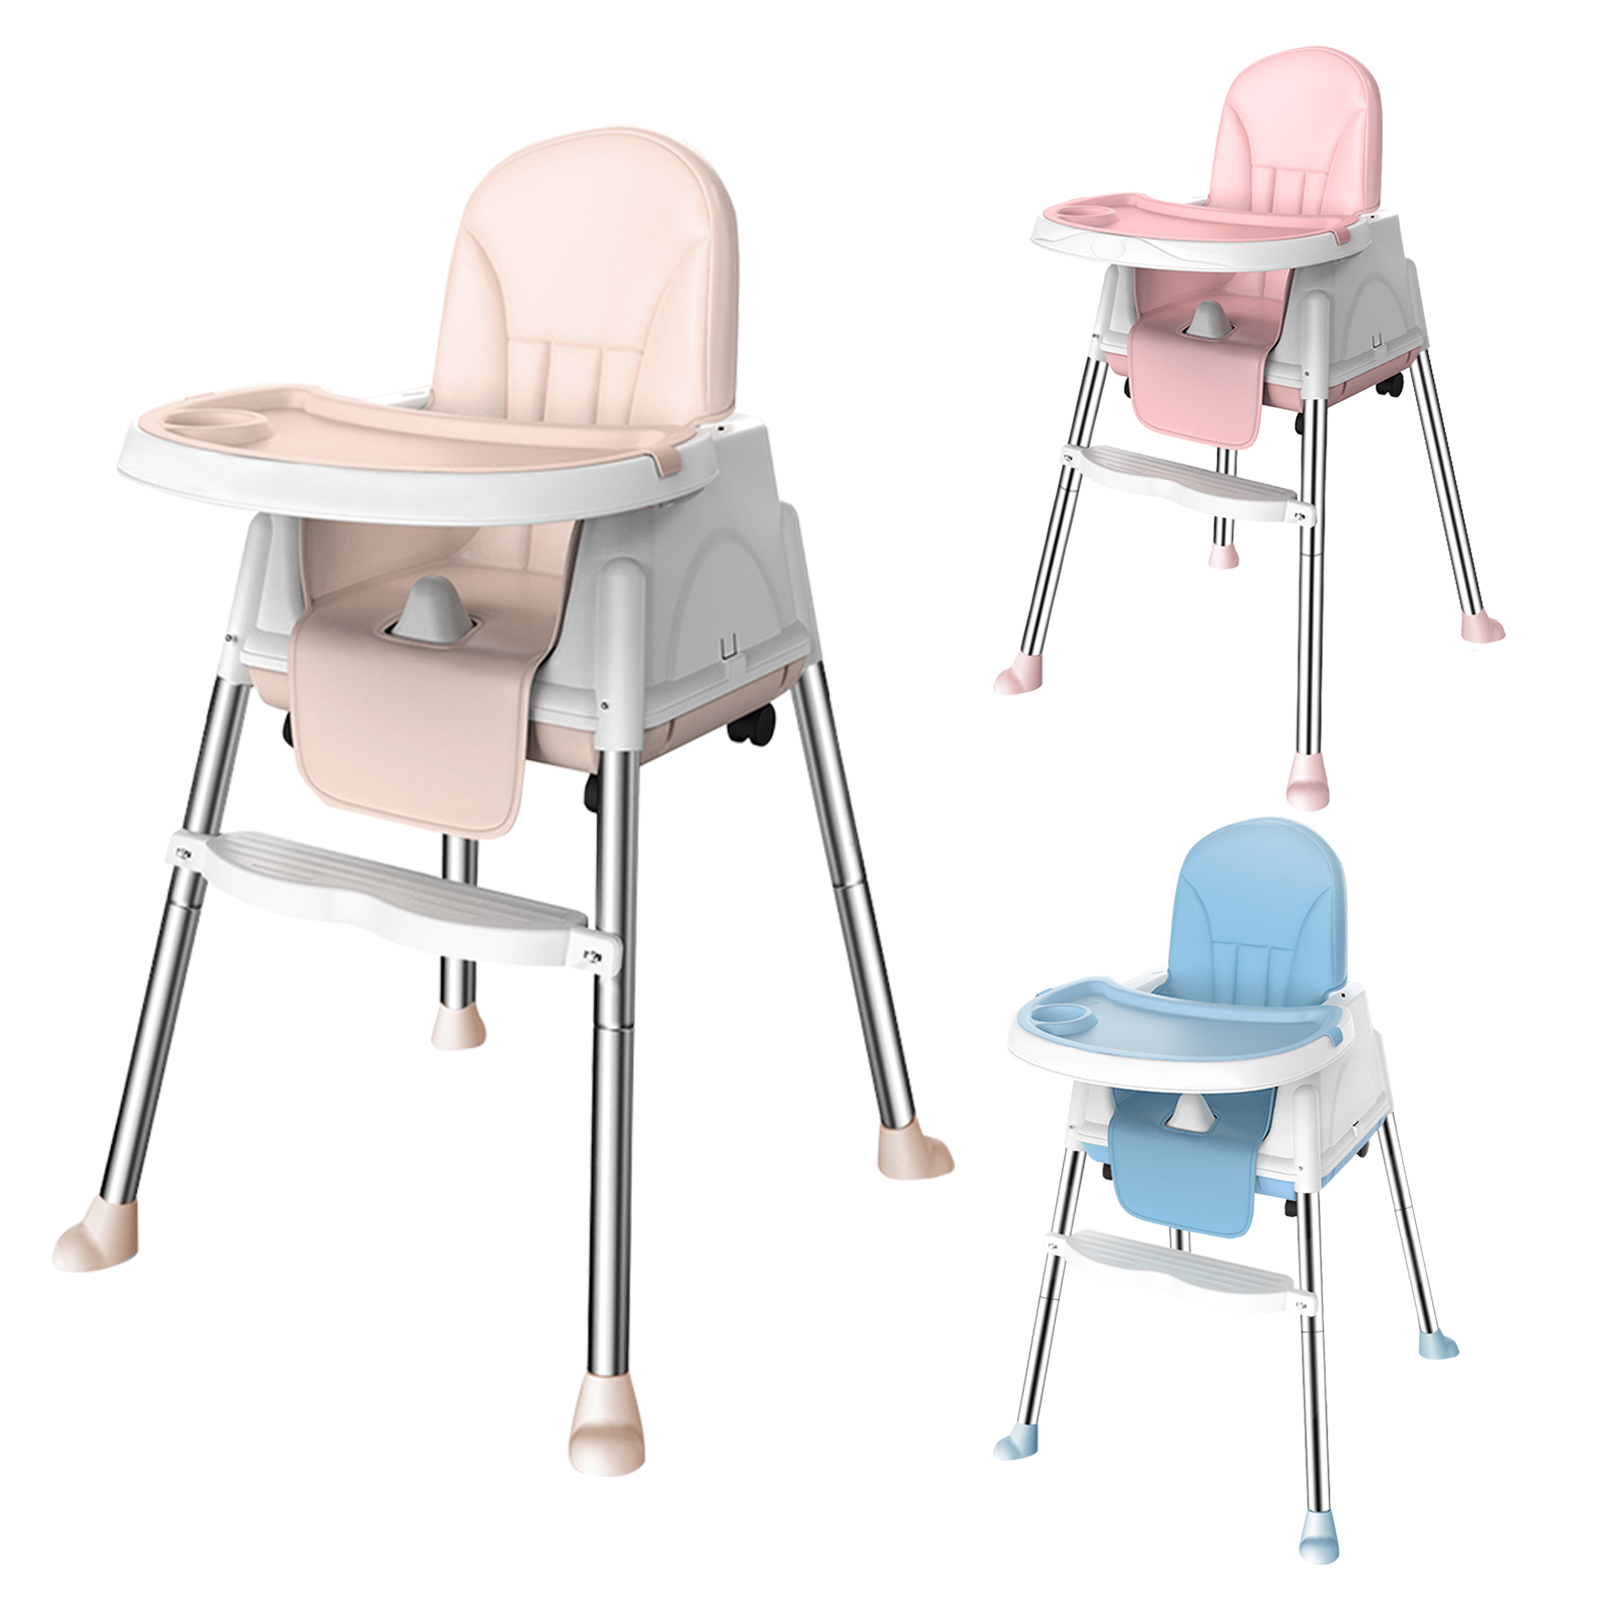 Portable Baby Seat Baby Dinner Table Baby Dining Chair Height Adjustable High Chair With Feeding Tray Child Dining Chair